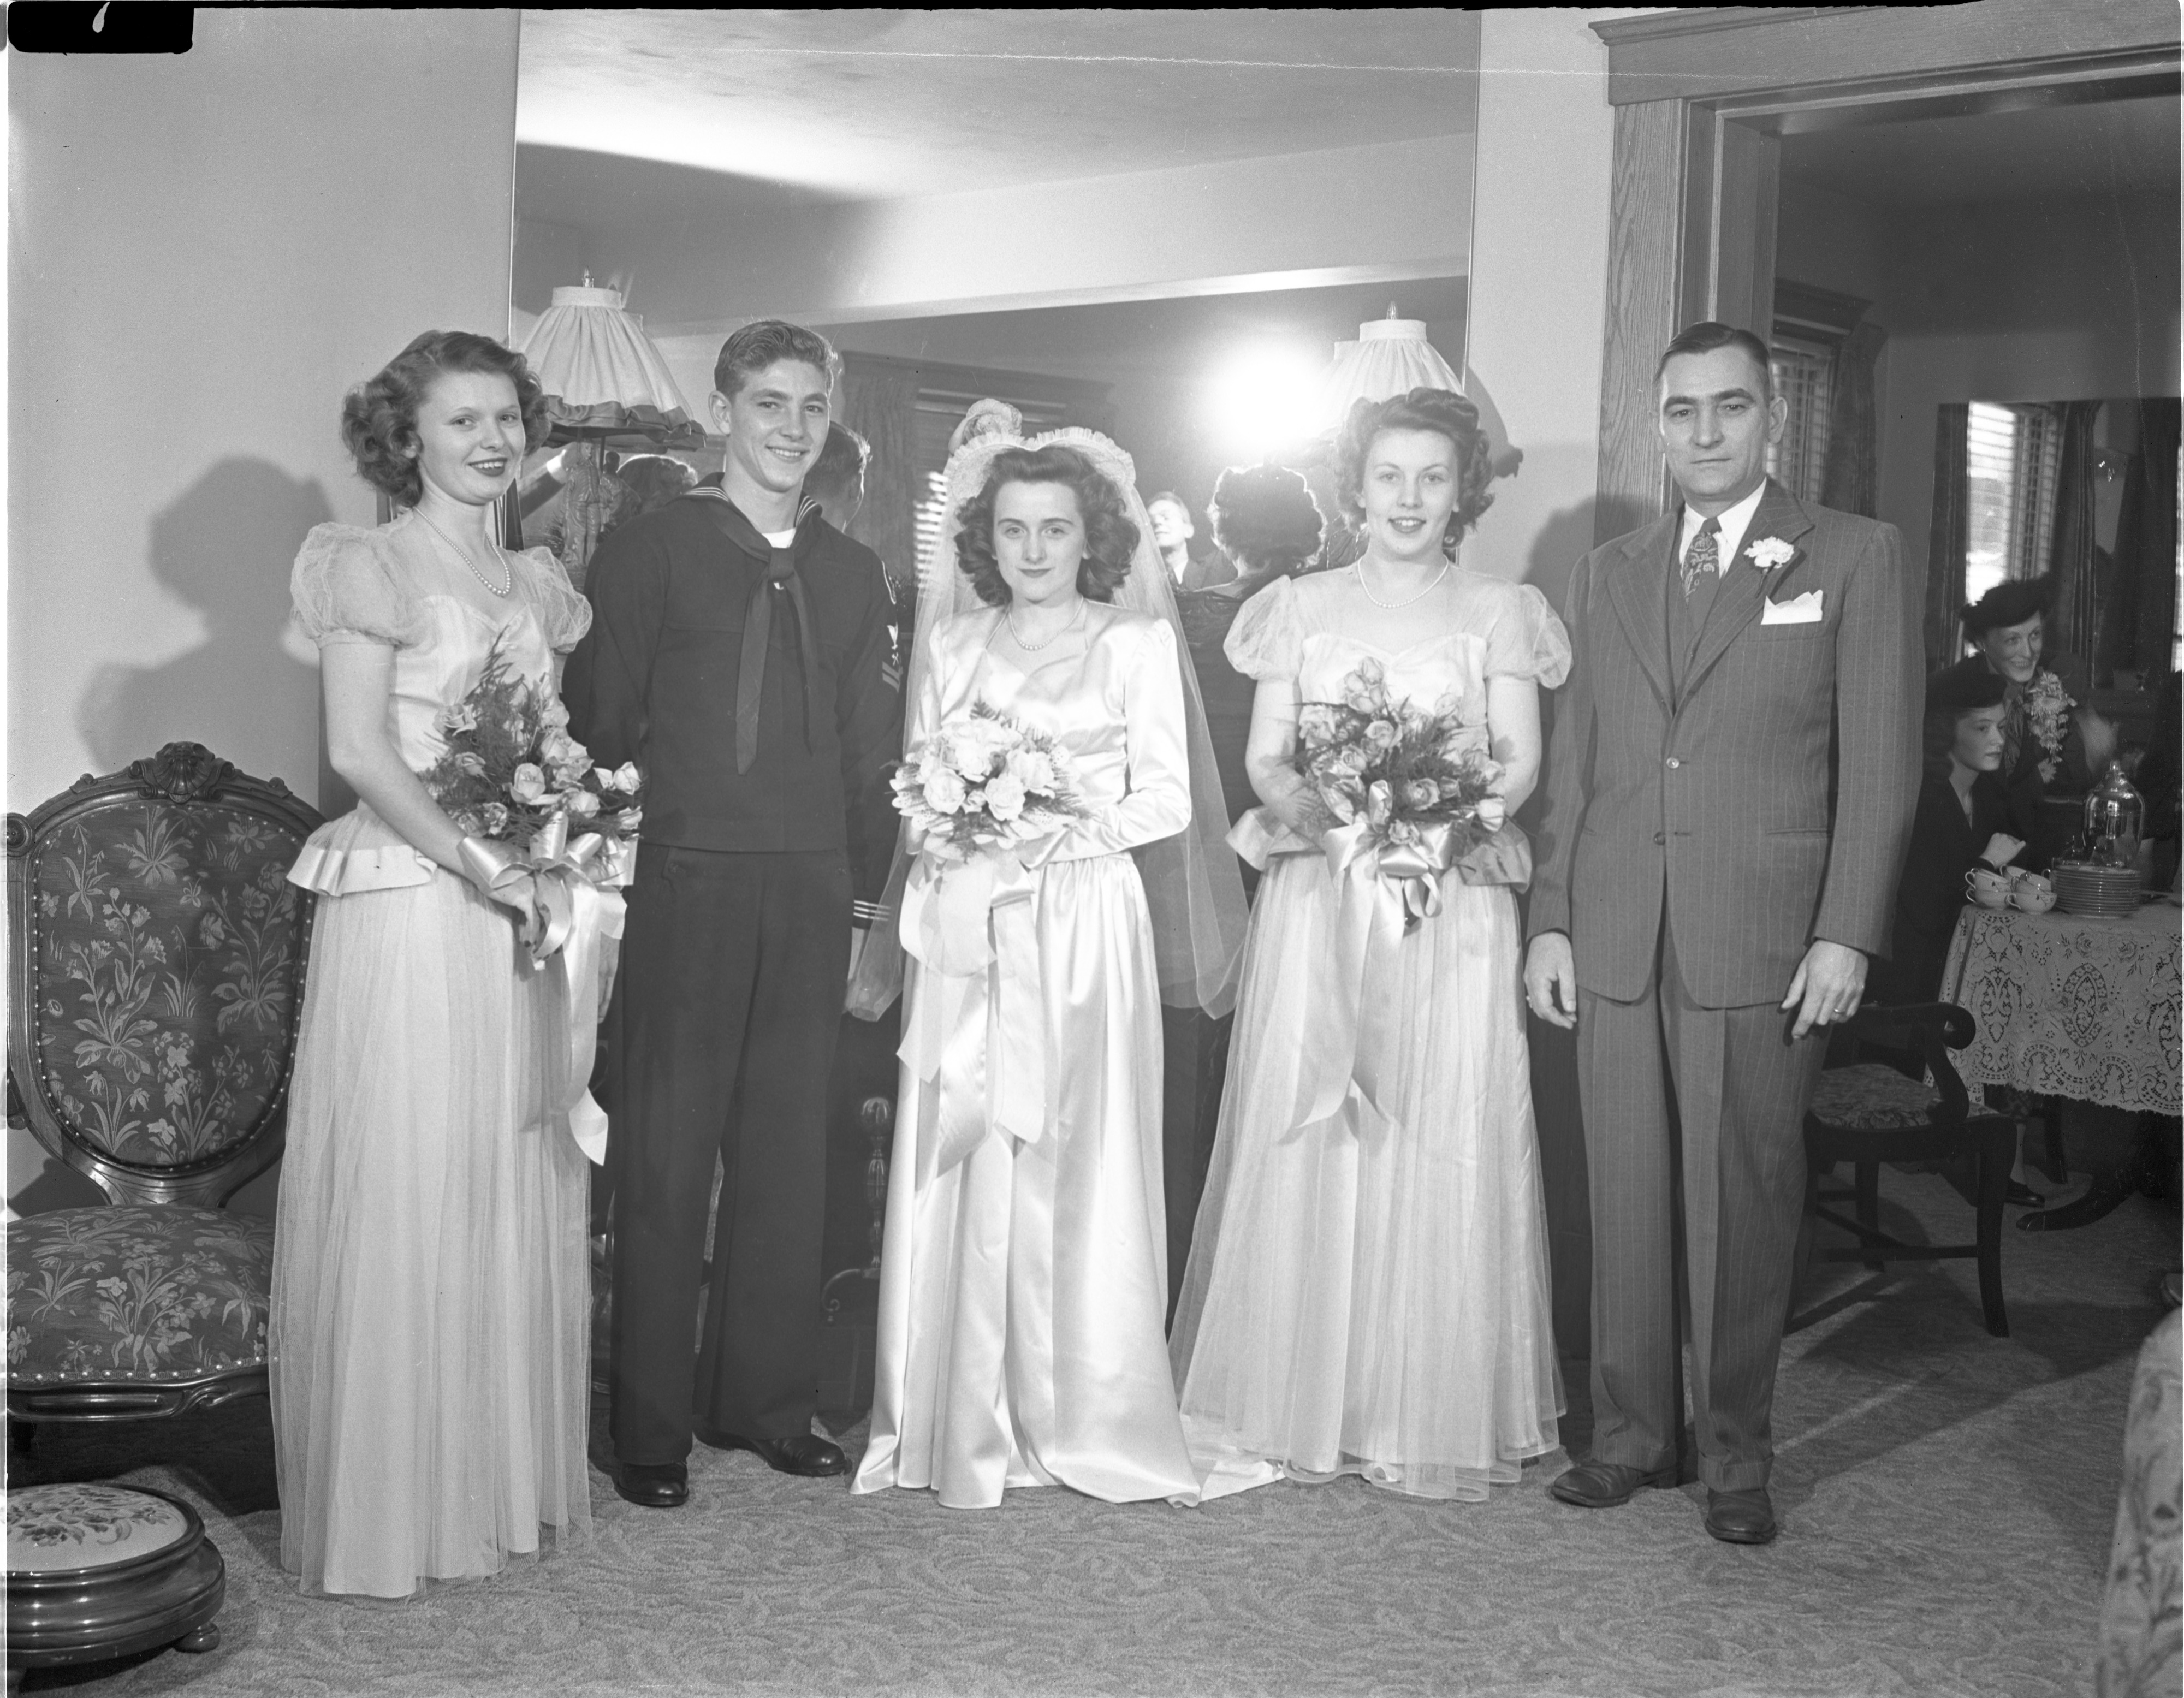 Walter & Patricia Bartell With Their Wedding Party - December 15, 1945 image